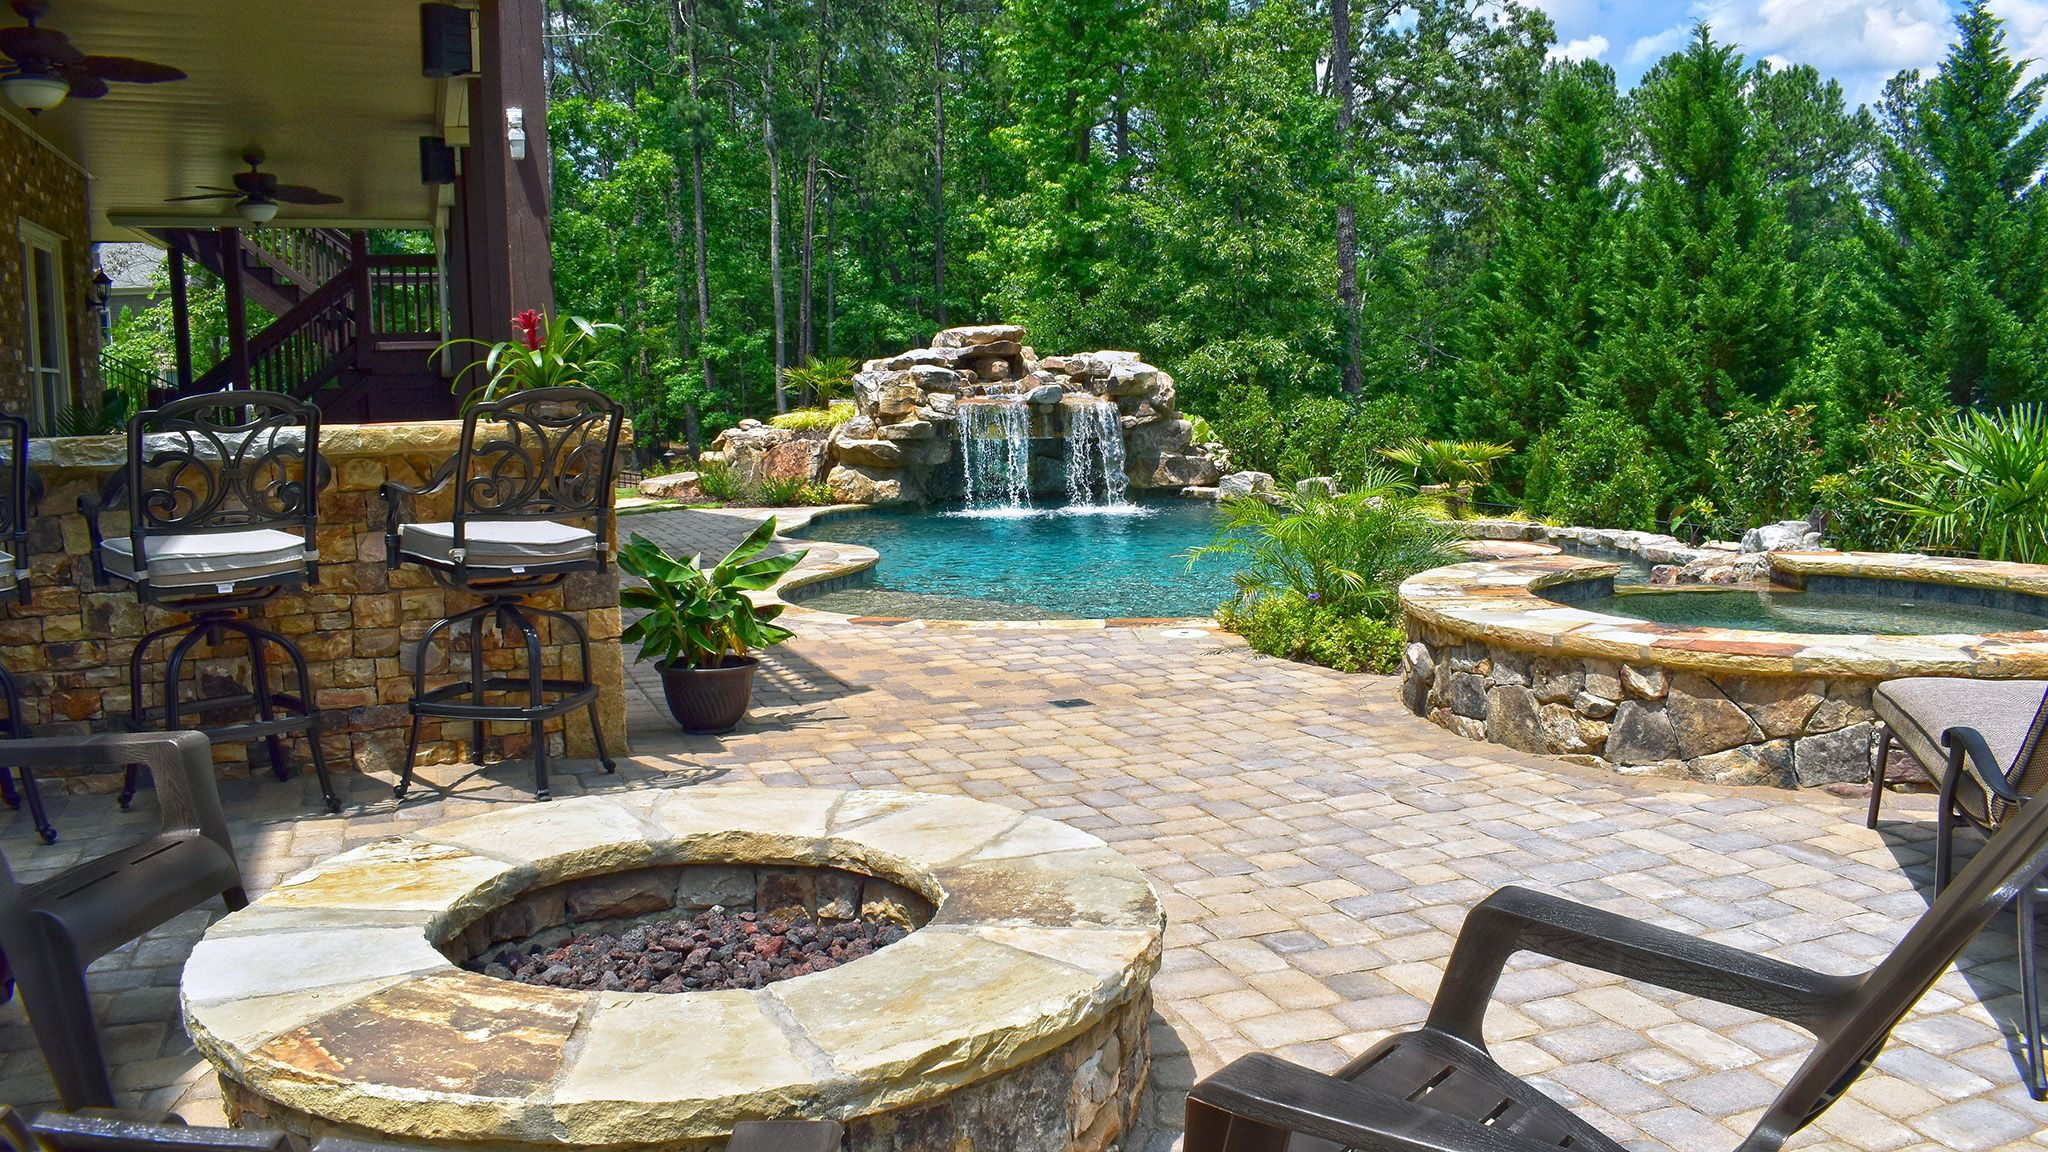 Our Choice of Top Aqua Design Pools Images - Home of Cat ...